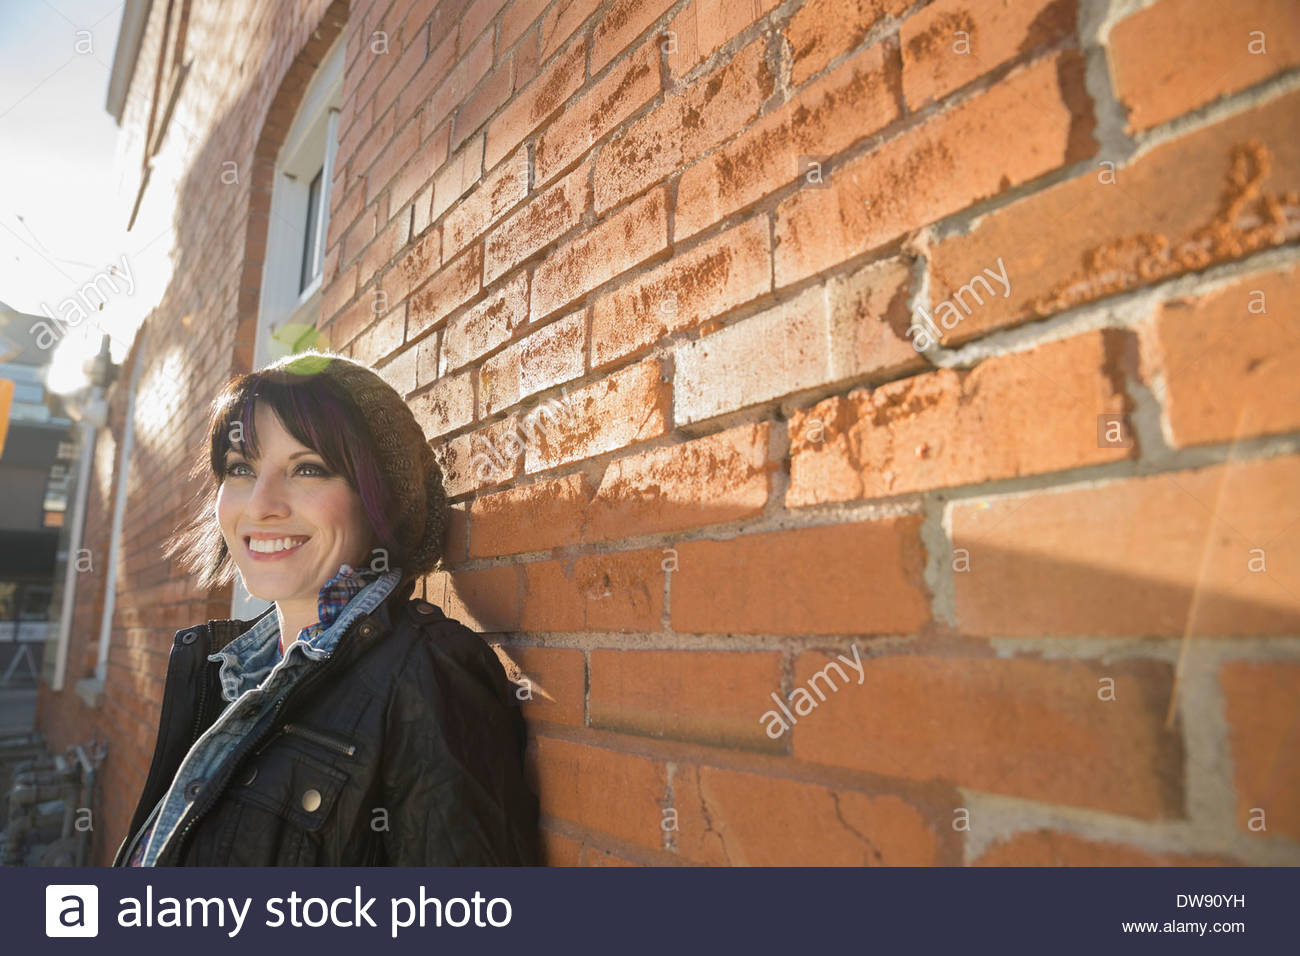 Smiling woman leaning against brick wall - Stock Image